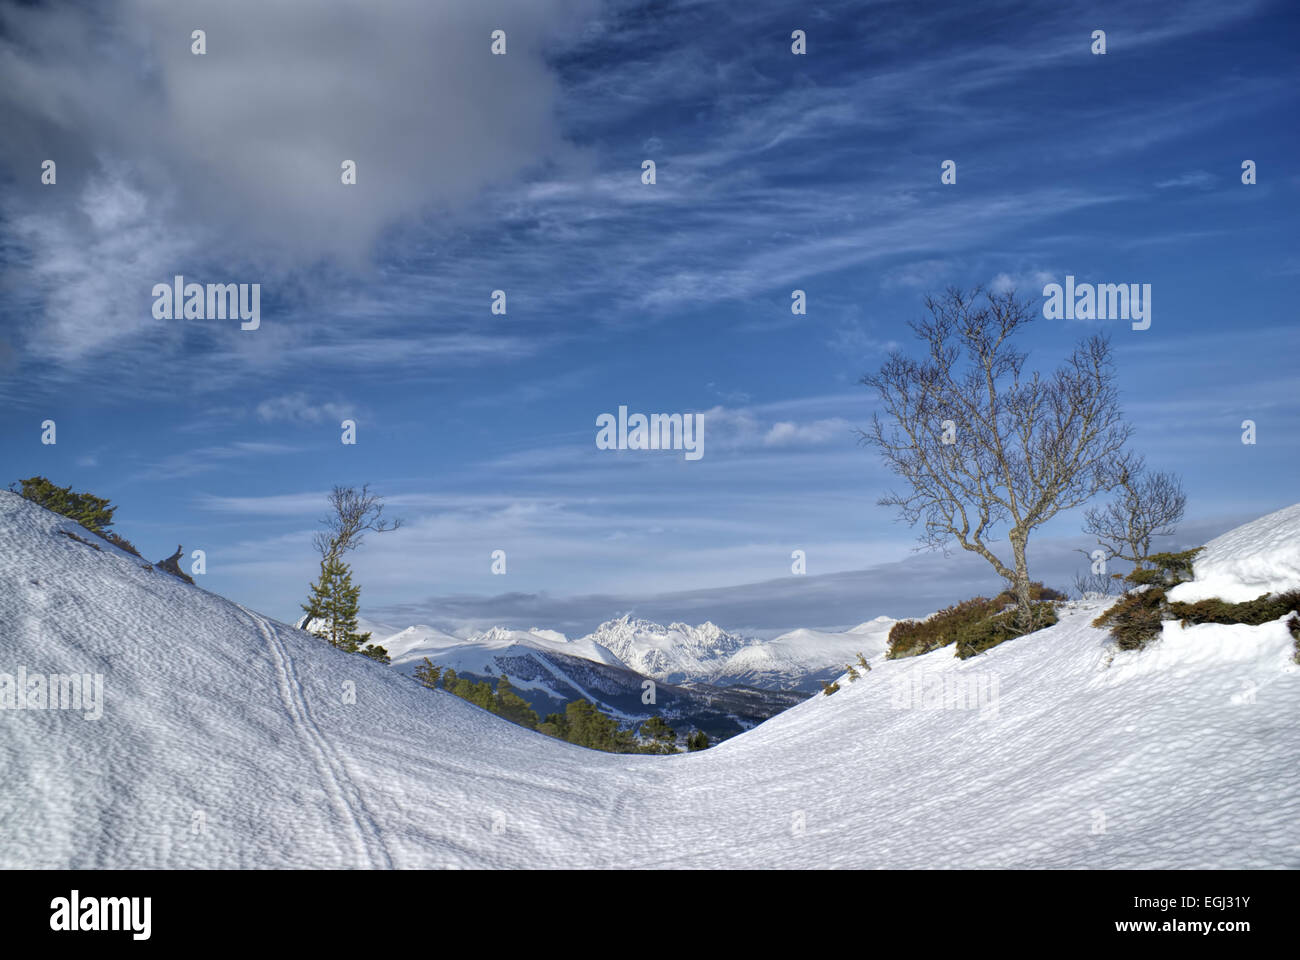 Picturesque view of a snowy valley in Norway with mountains in the background - Stock Image